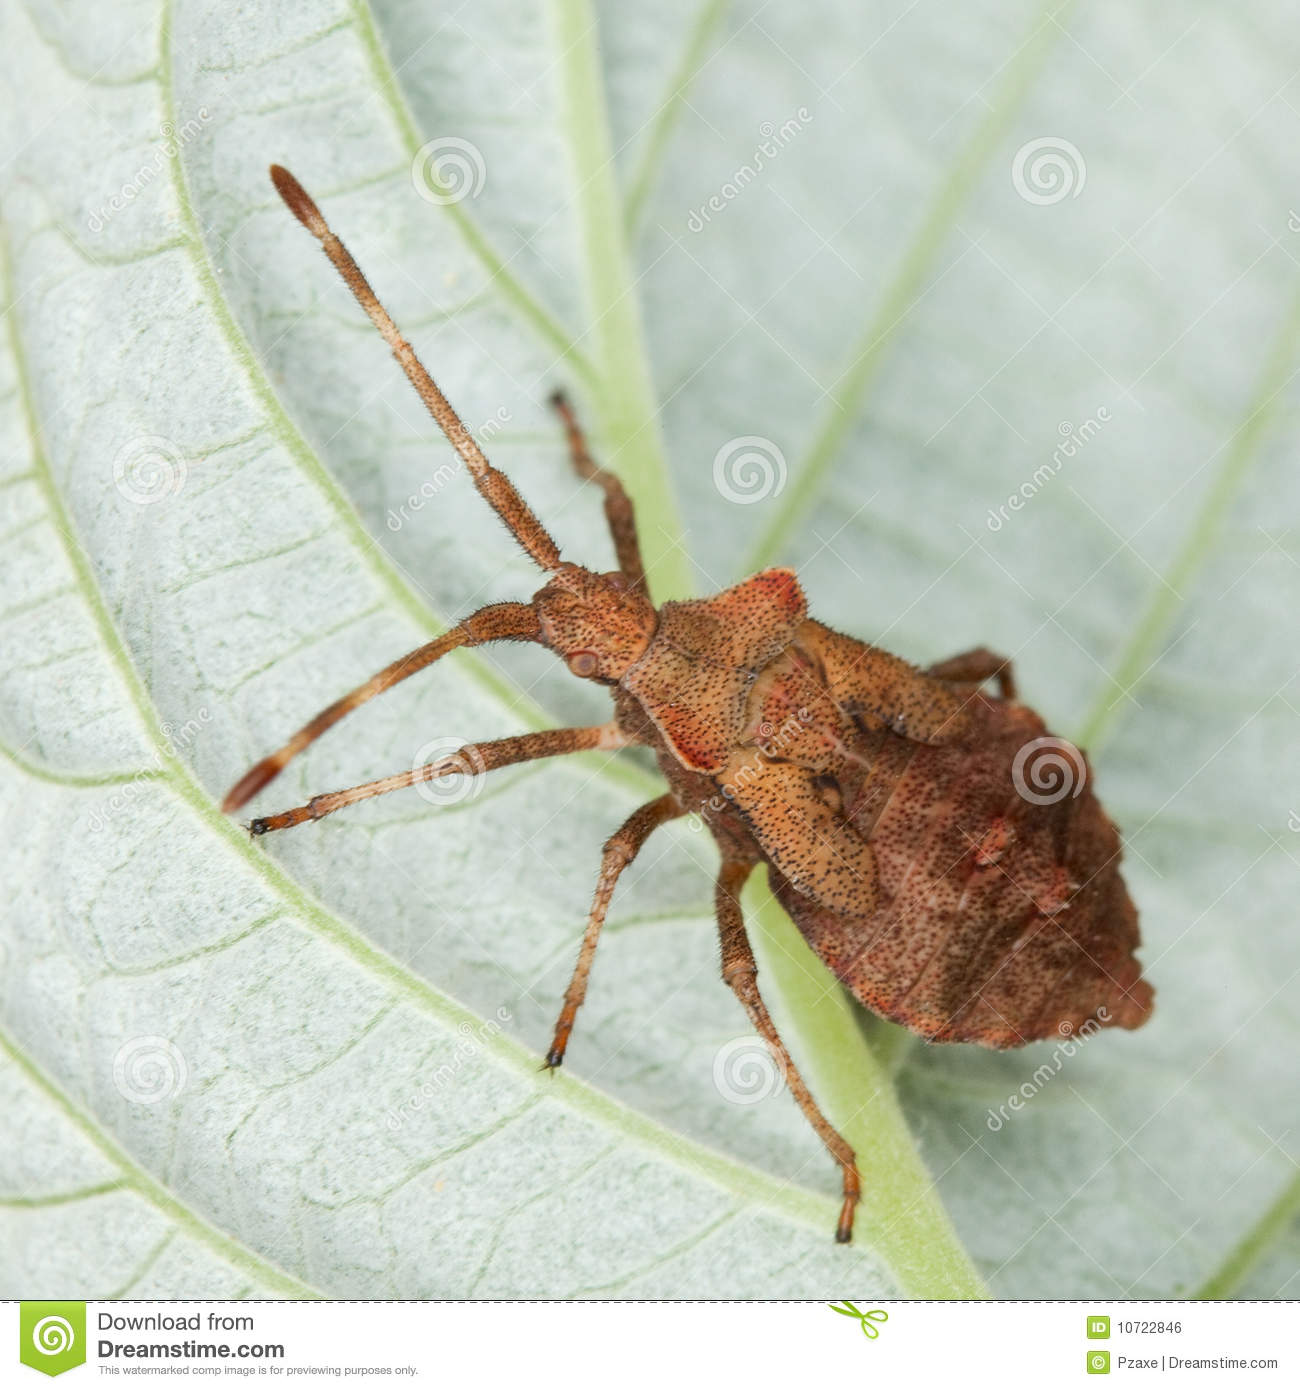 Brown Stink Bug Sitting On A Leaf Royalty Free Stock Image   Image